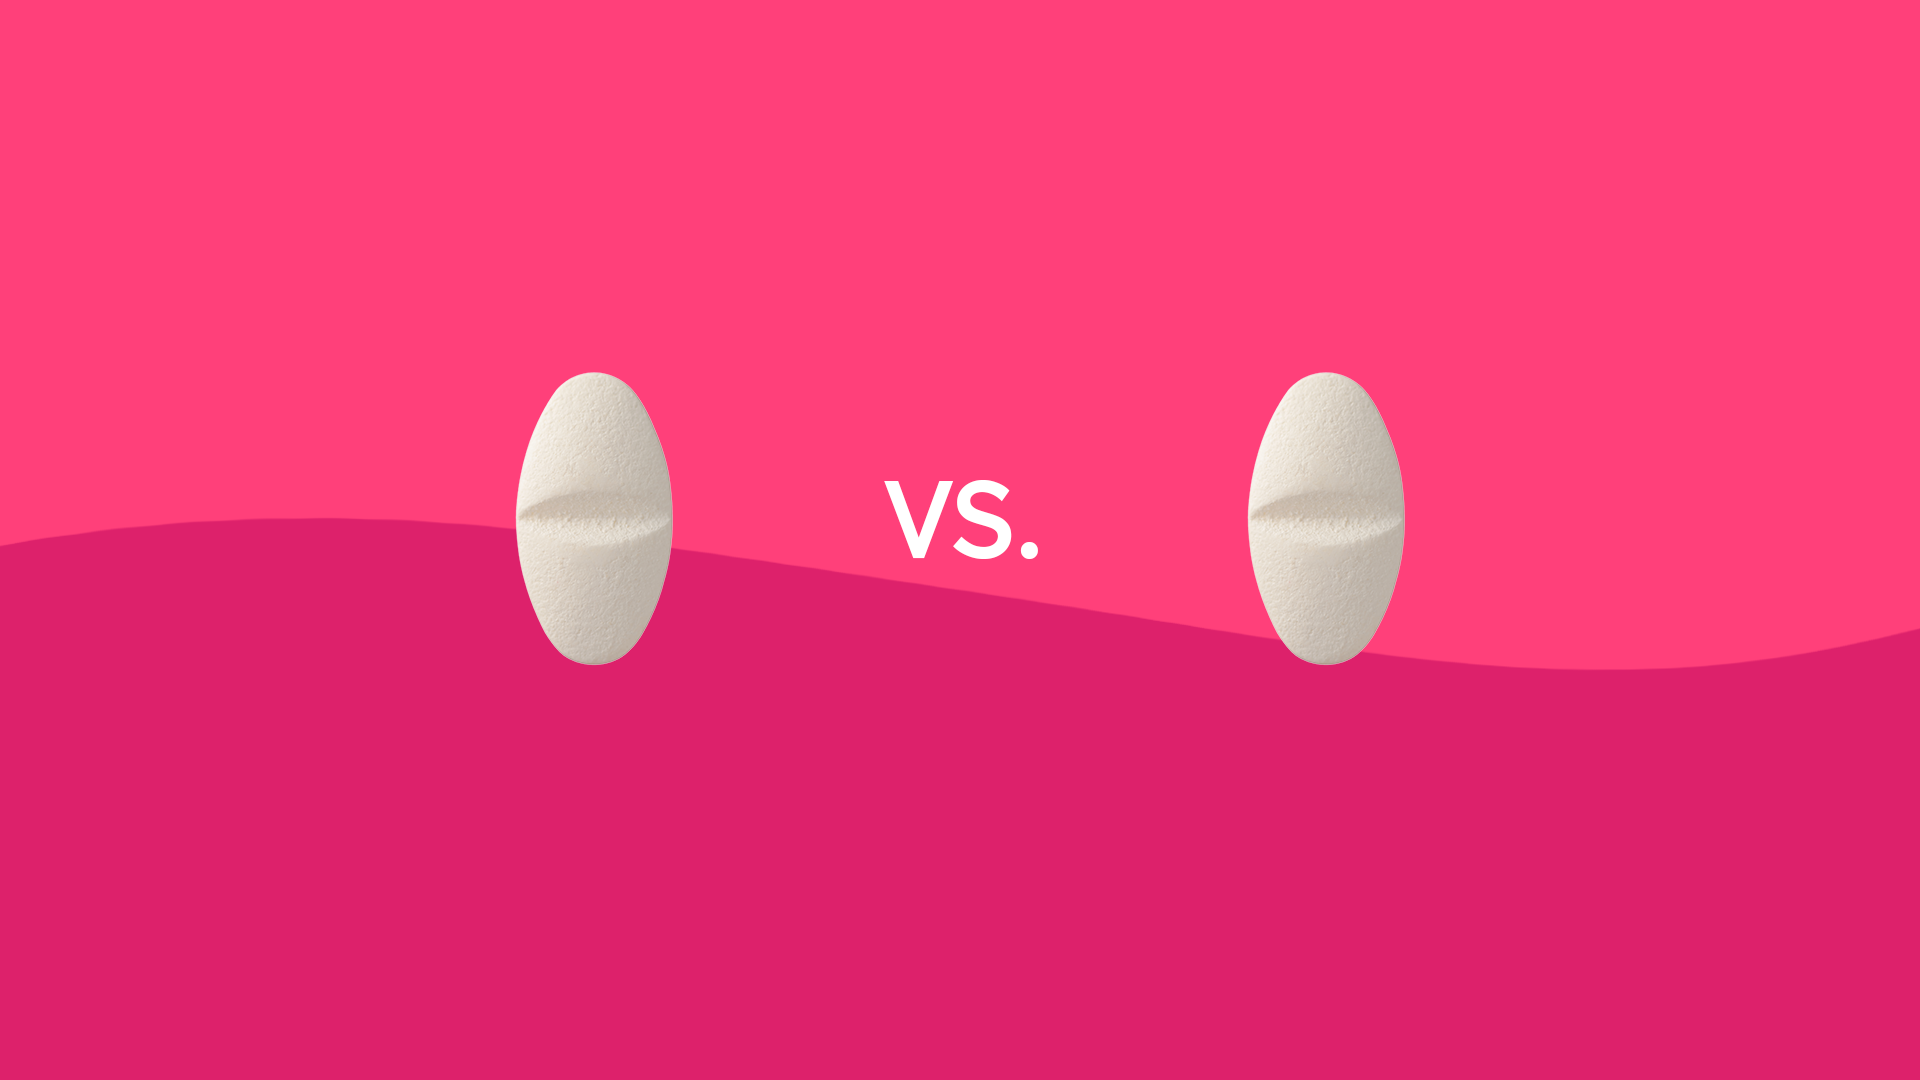 Wellbutrin vs. Zoloft: Differences, similarities, and which is better for you